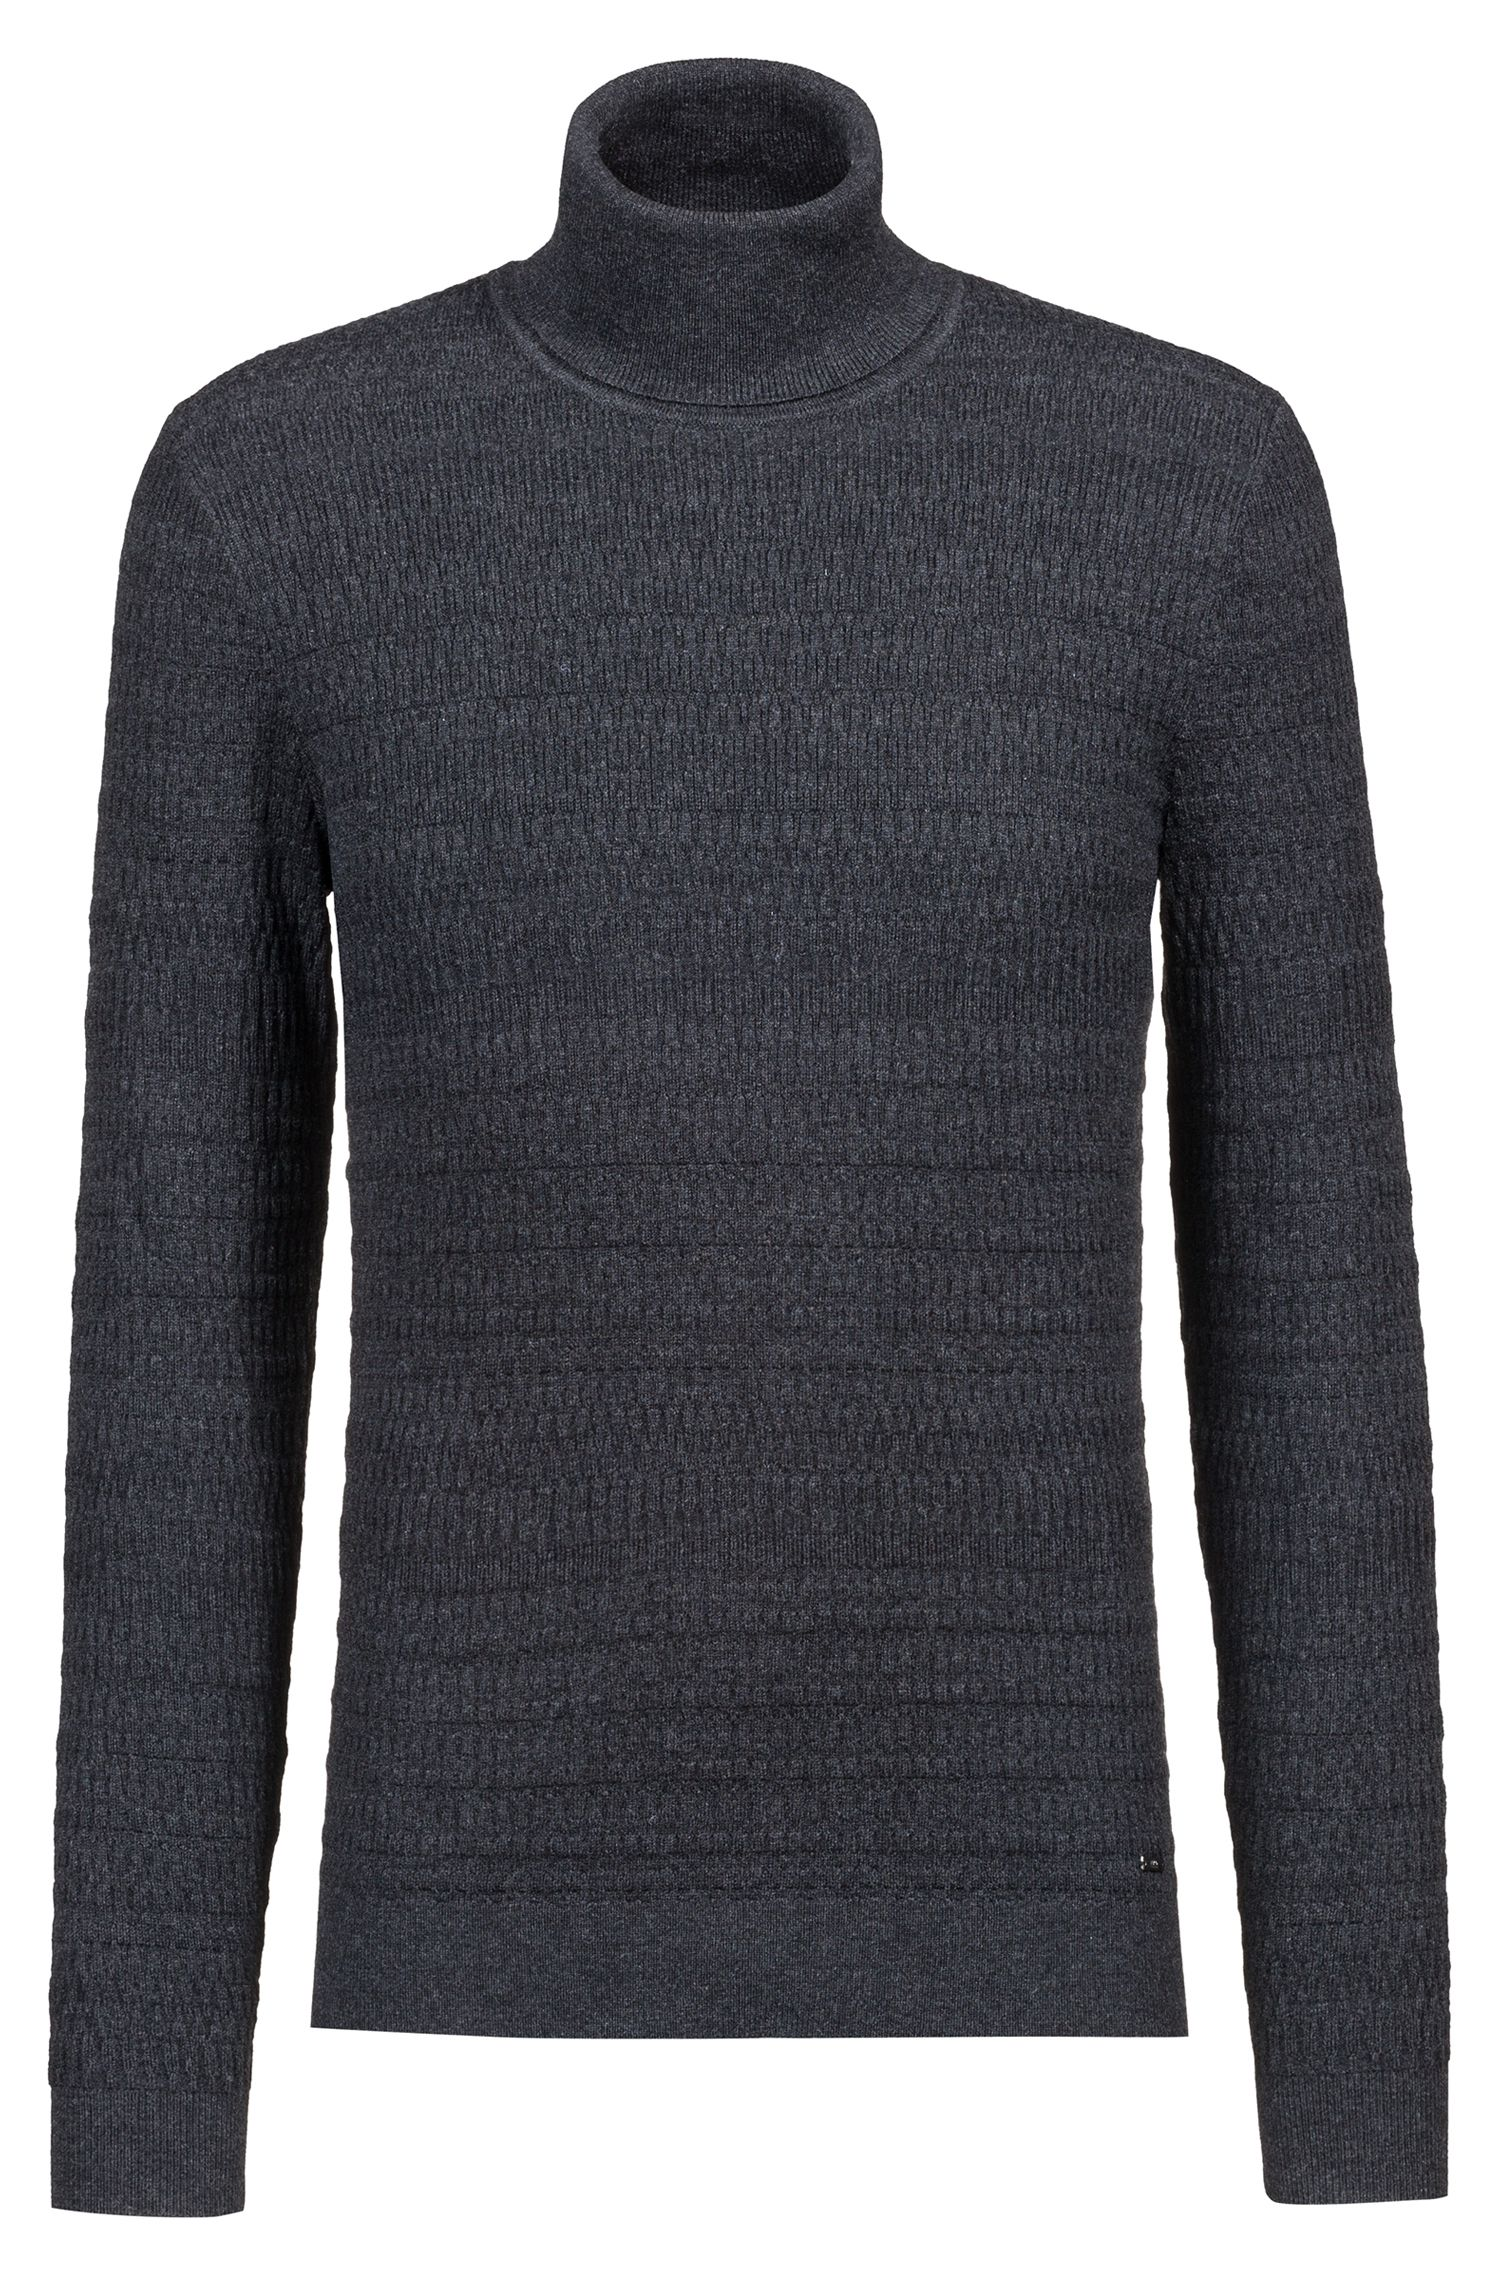 Extra-slim-fit turtleneck sweater in wool and cotton, Anthracite